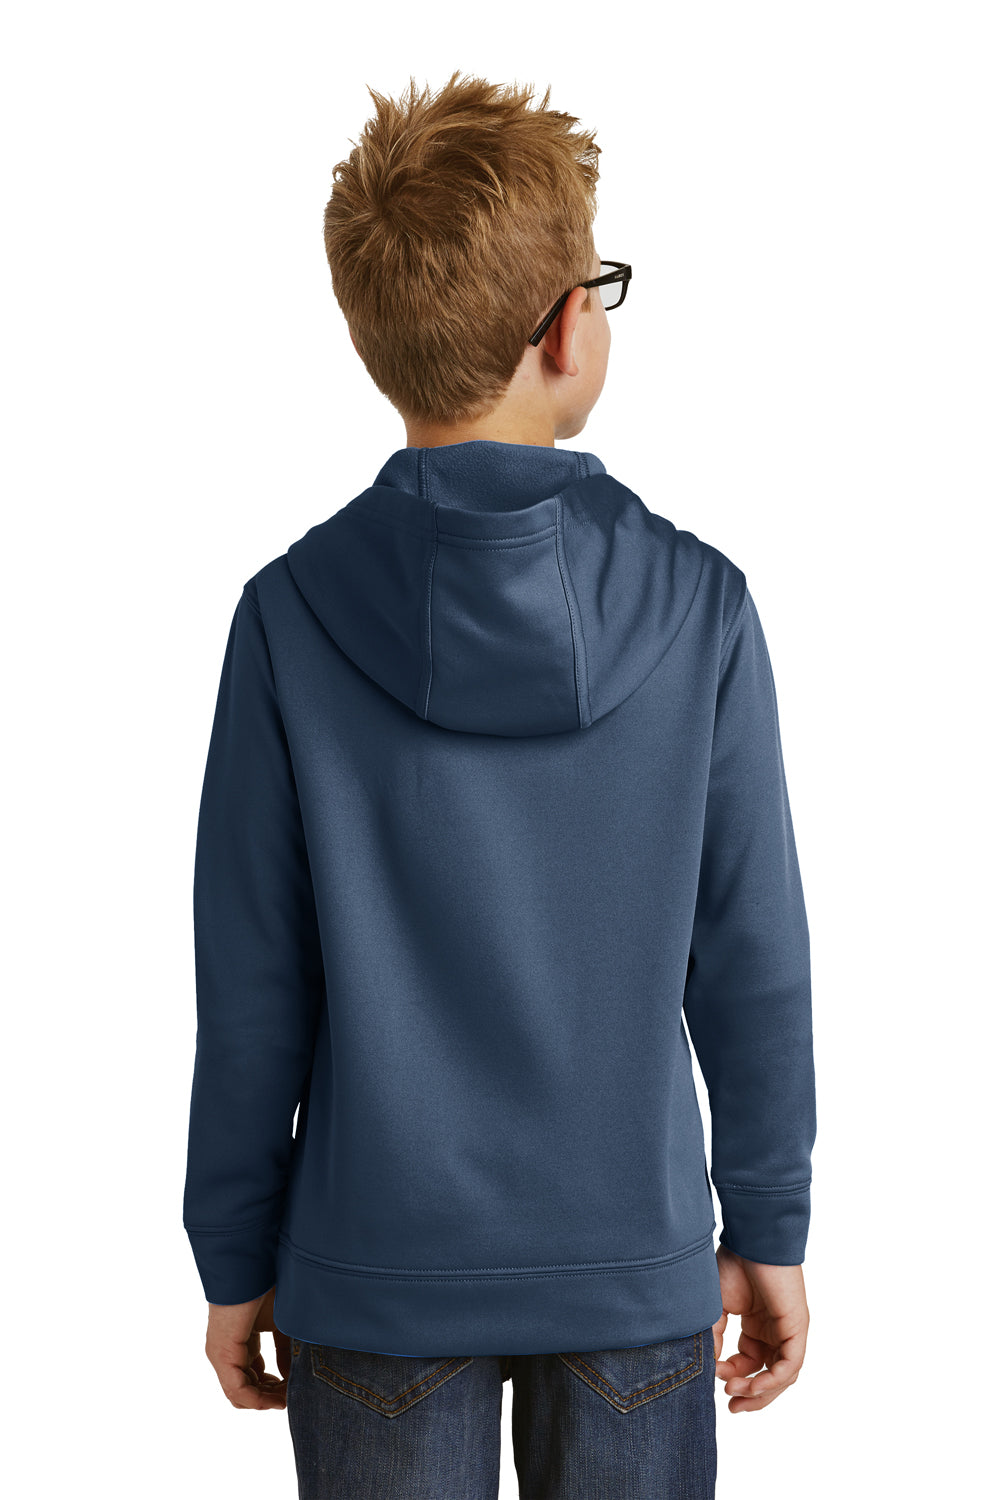 Port & Company PC590YH Youth Dry Zone Performance Moisture Wicking Fleece Hooded Sweatshirt Hoodie Navy Blue Back